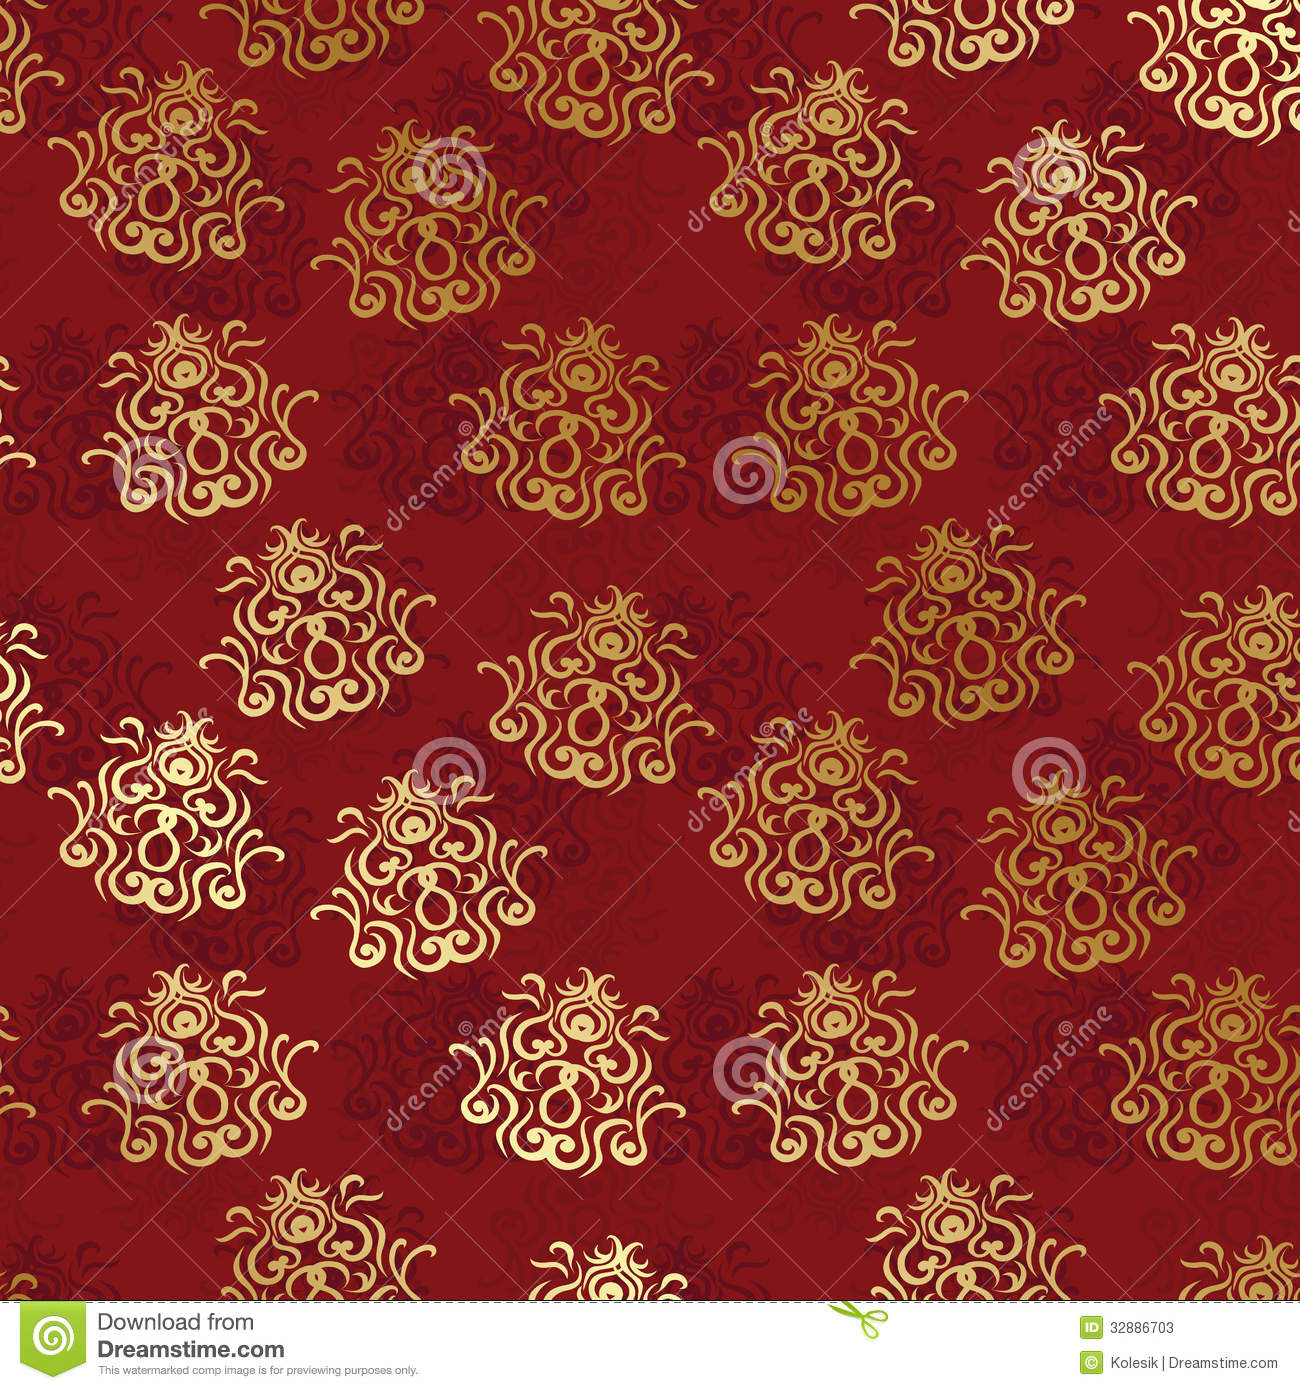 Vintage Seamless Wallpaper On A Red Background Stock ...